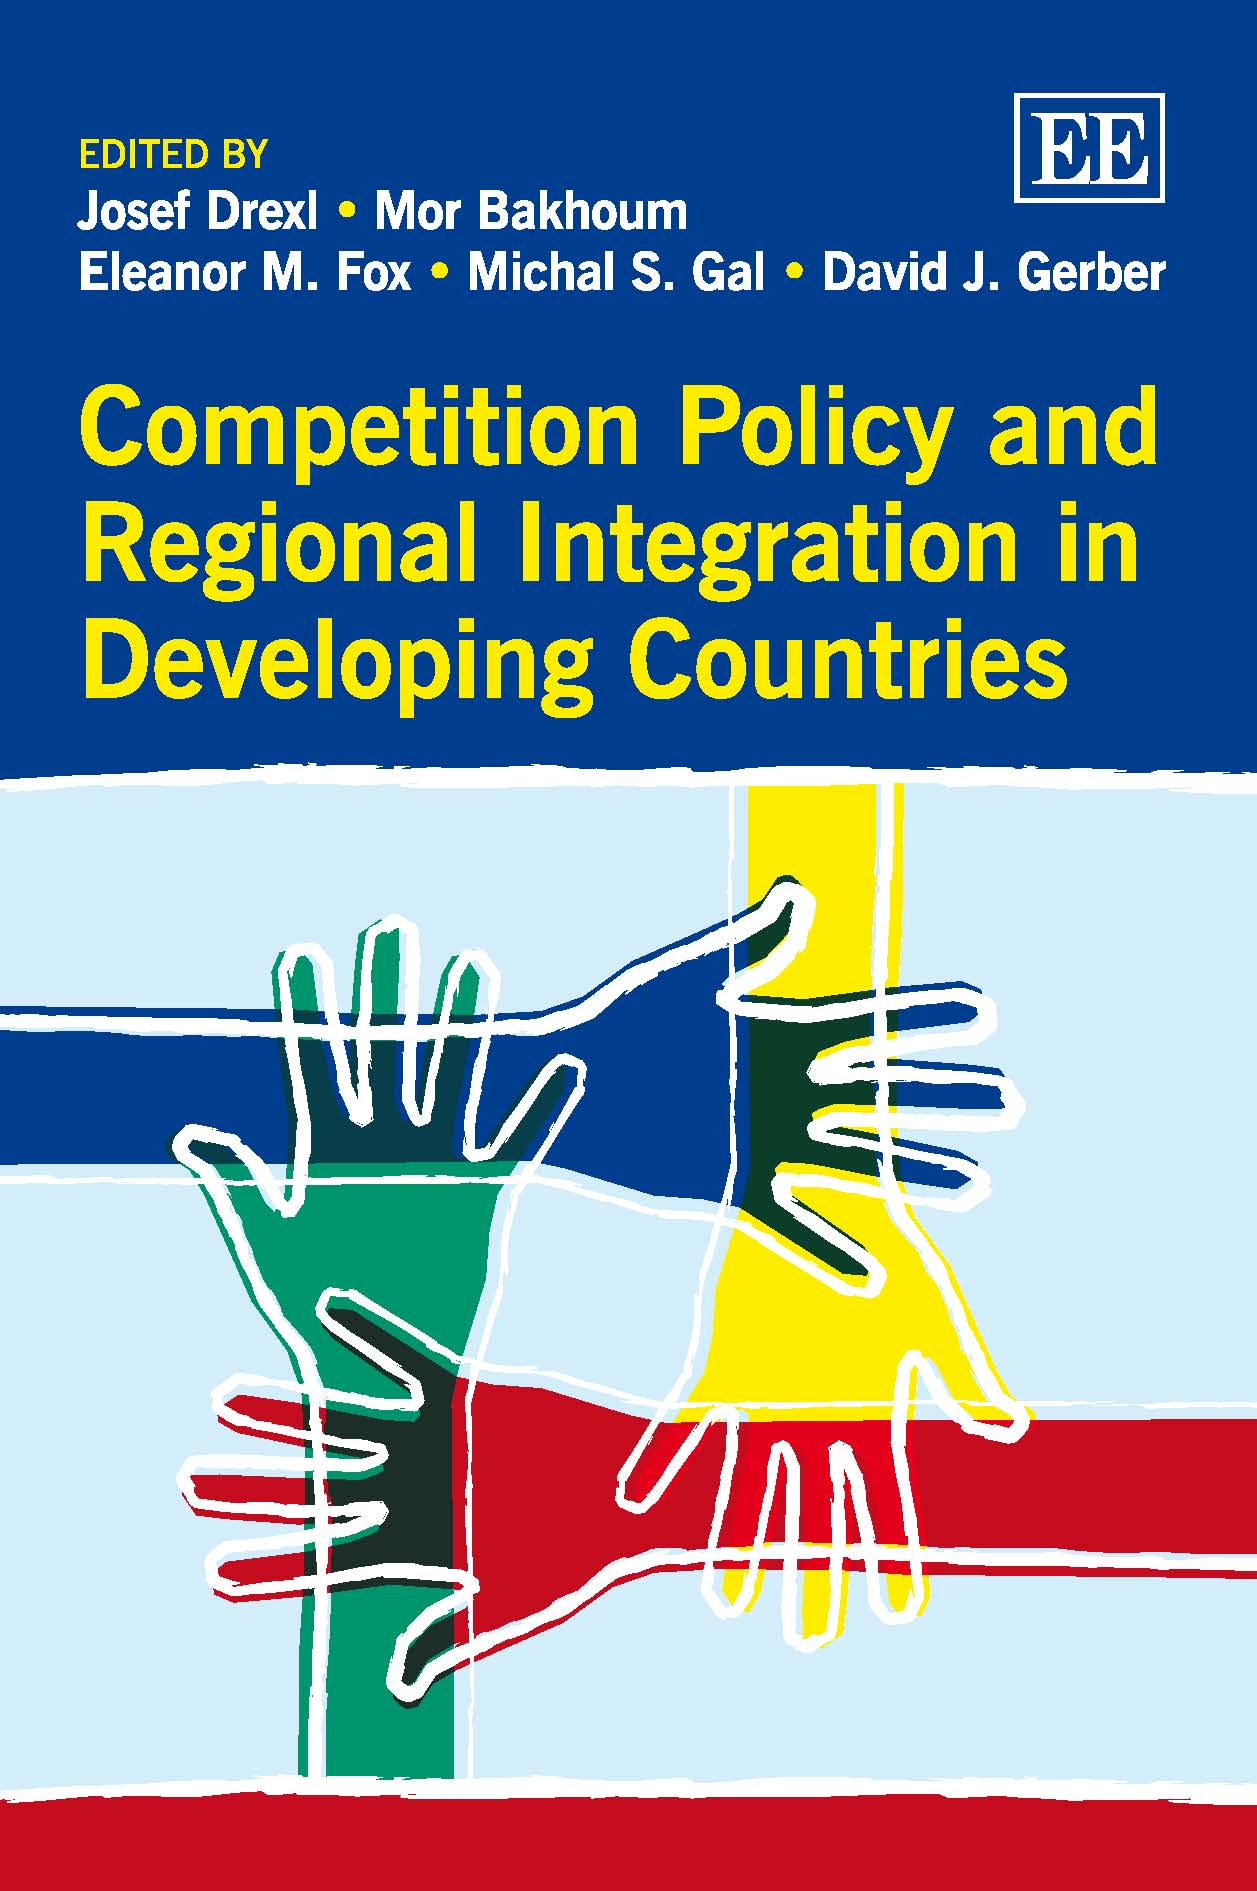 Download Ebook Competition Policy and Regional Integration in Developing Countries by Josef Drexl Pdf